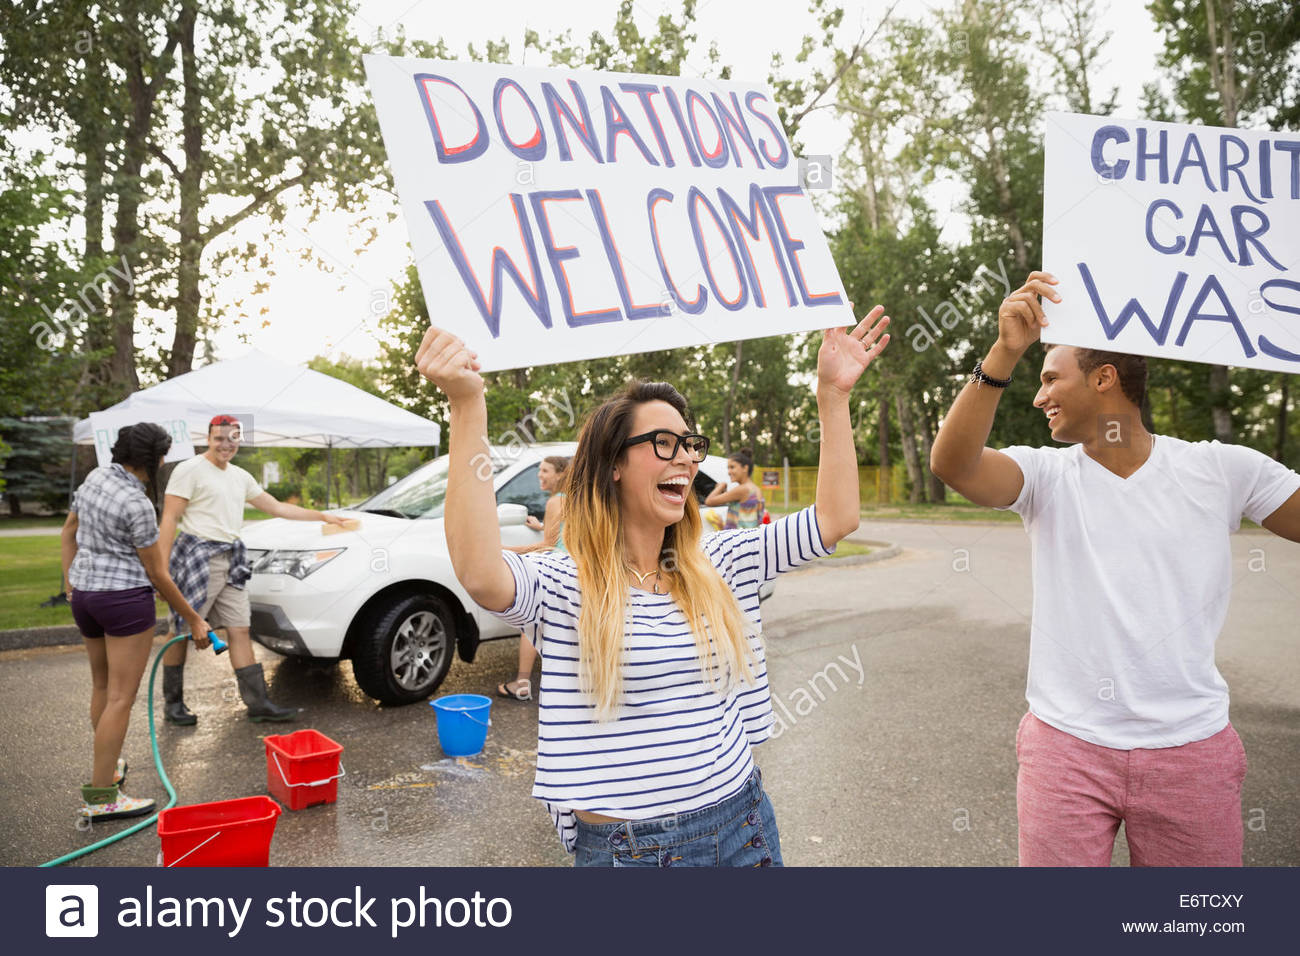 Car wash signs stock photos car wash signs stock images alamy enthusiastic volunteers waving charity car wash signs stock image solutioingenieria Images